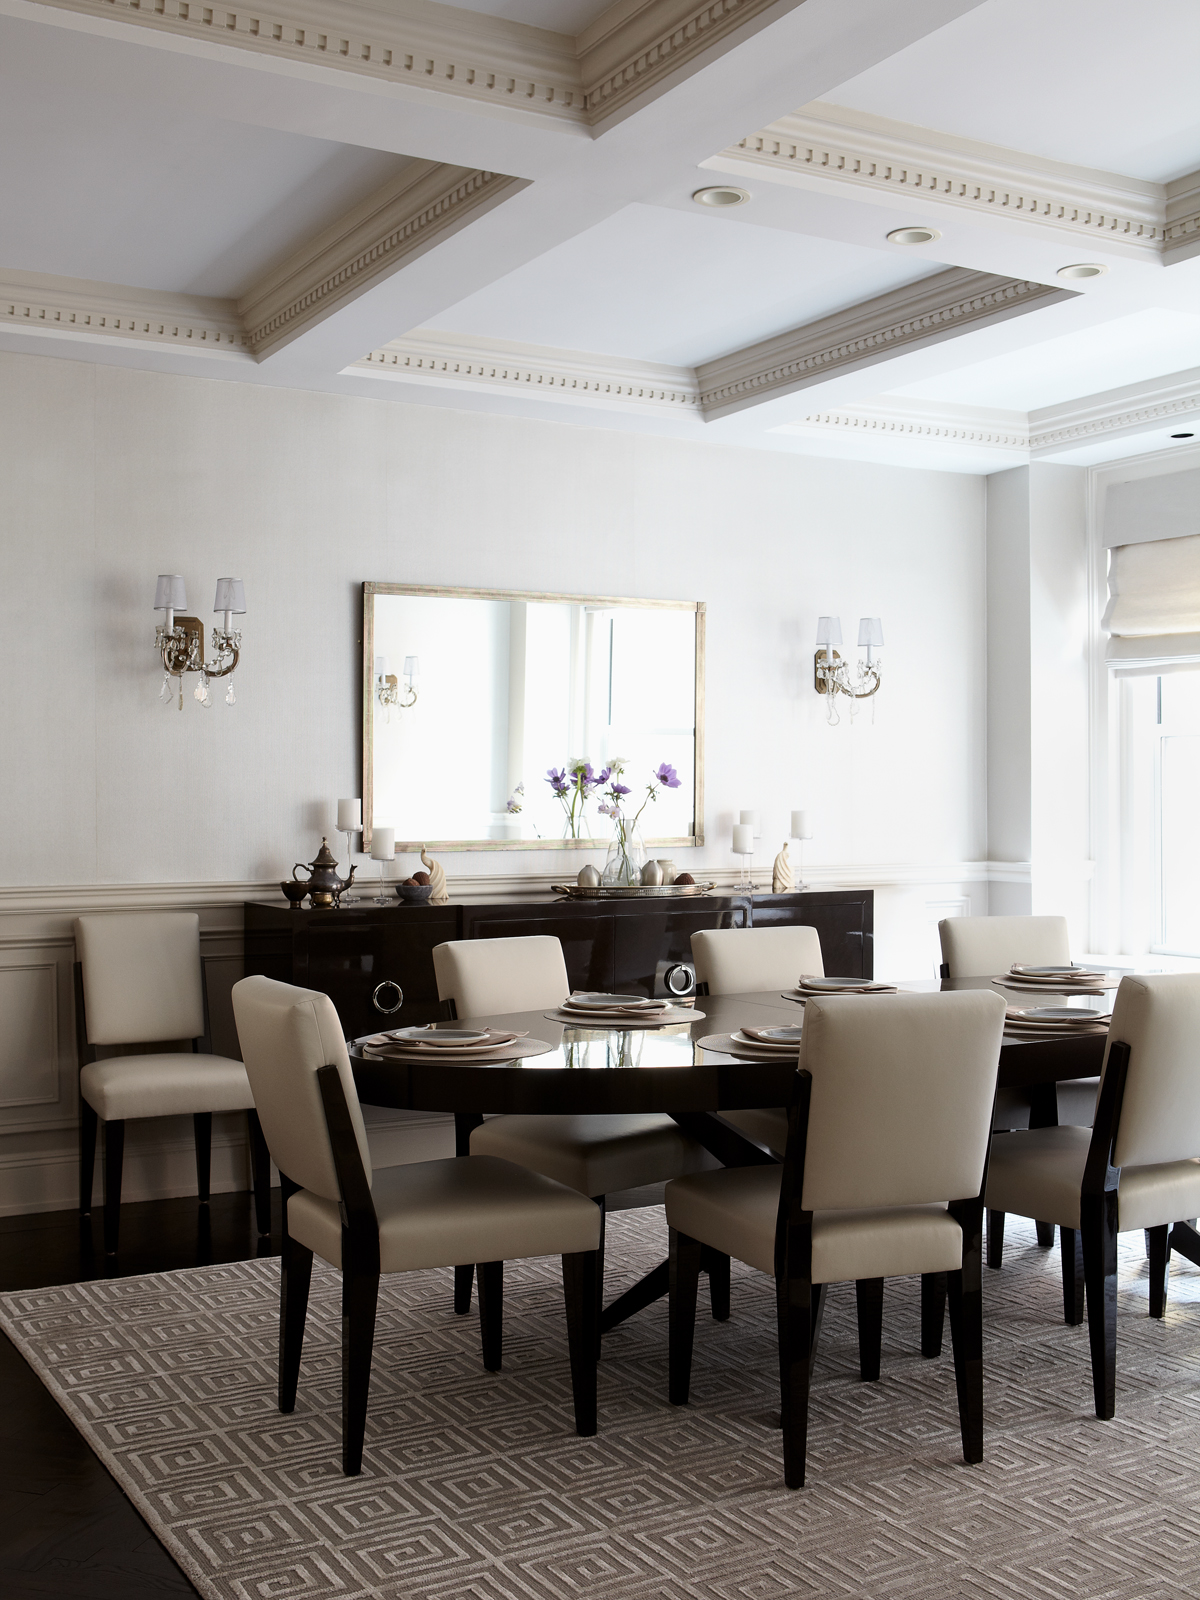 Luxurious and modern dining room with coffered ceiling and lacquered details by Allison Garcy Interiors